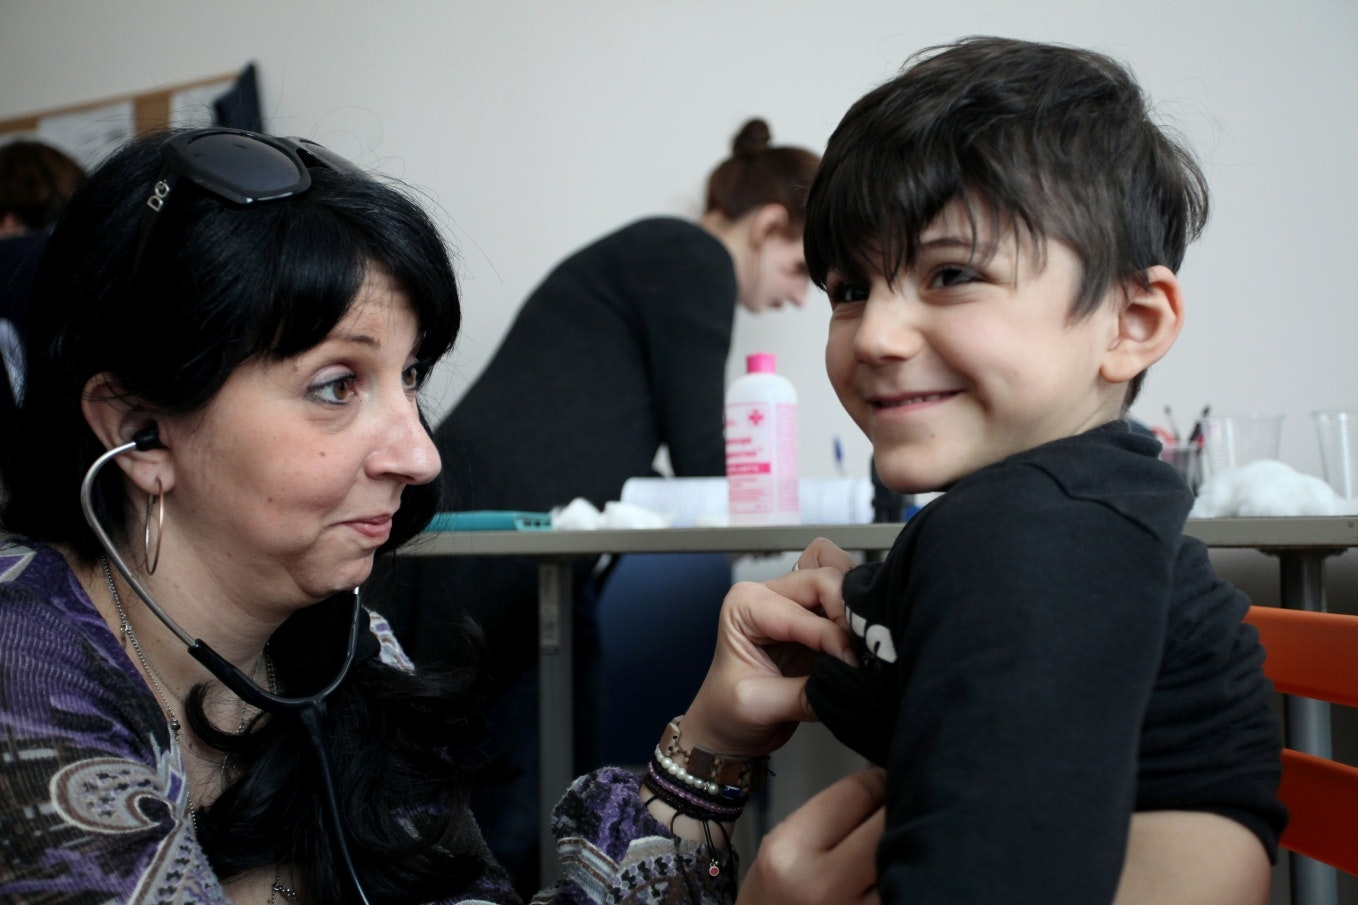 A boy smiles while being examined by a doctor